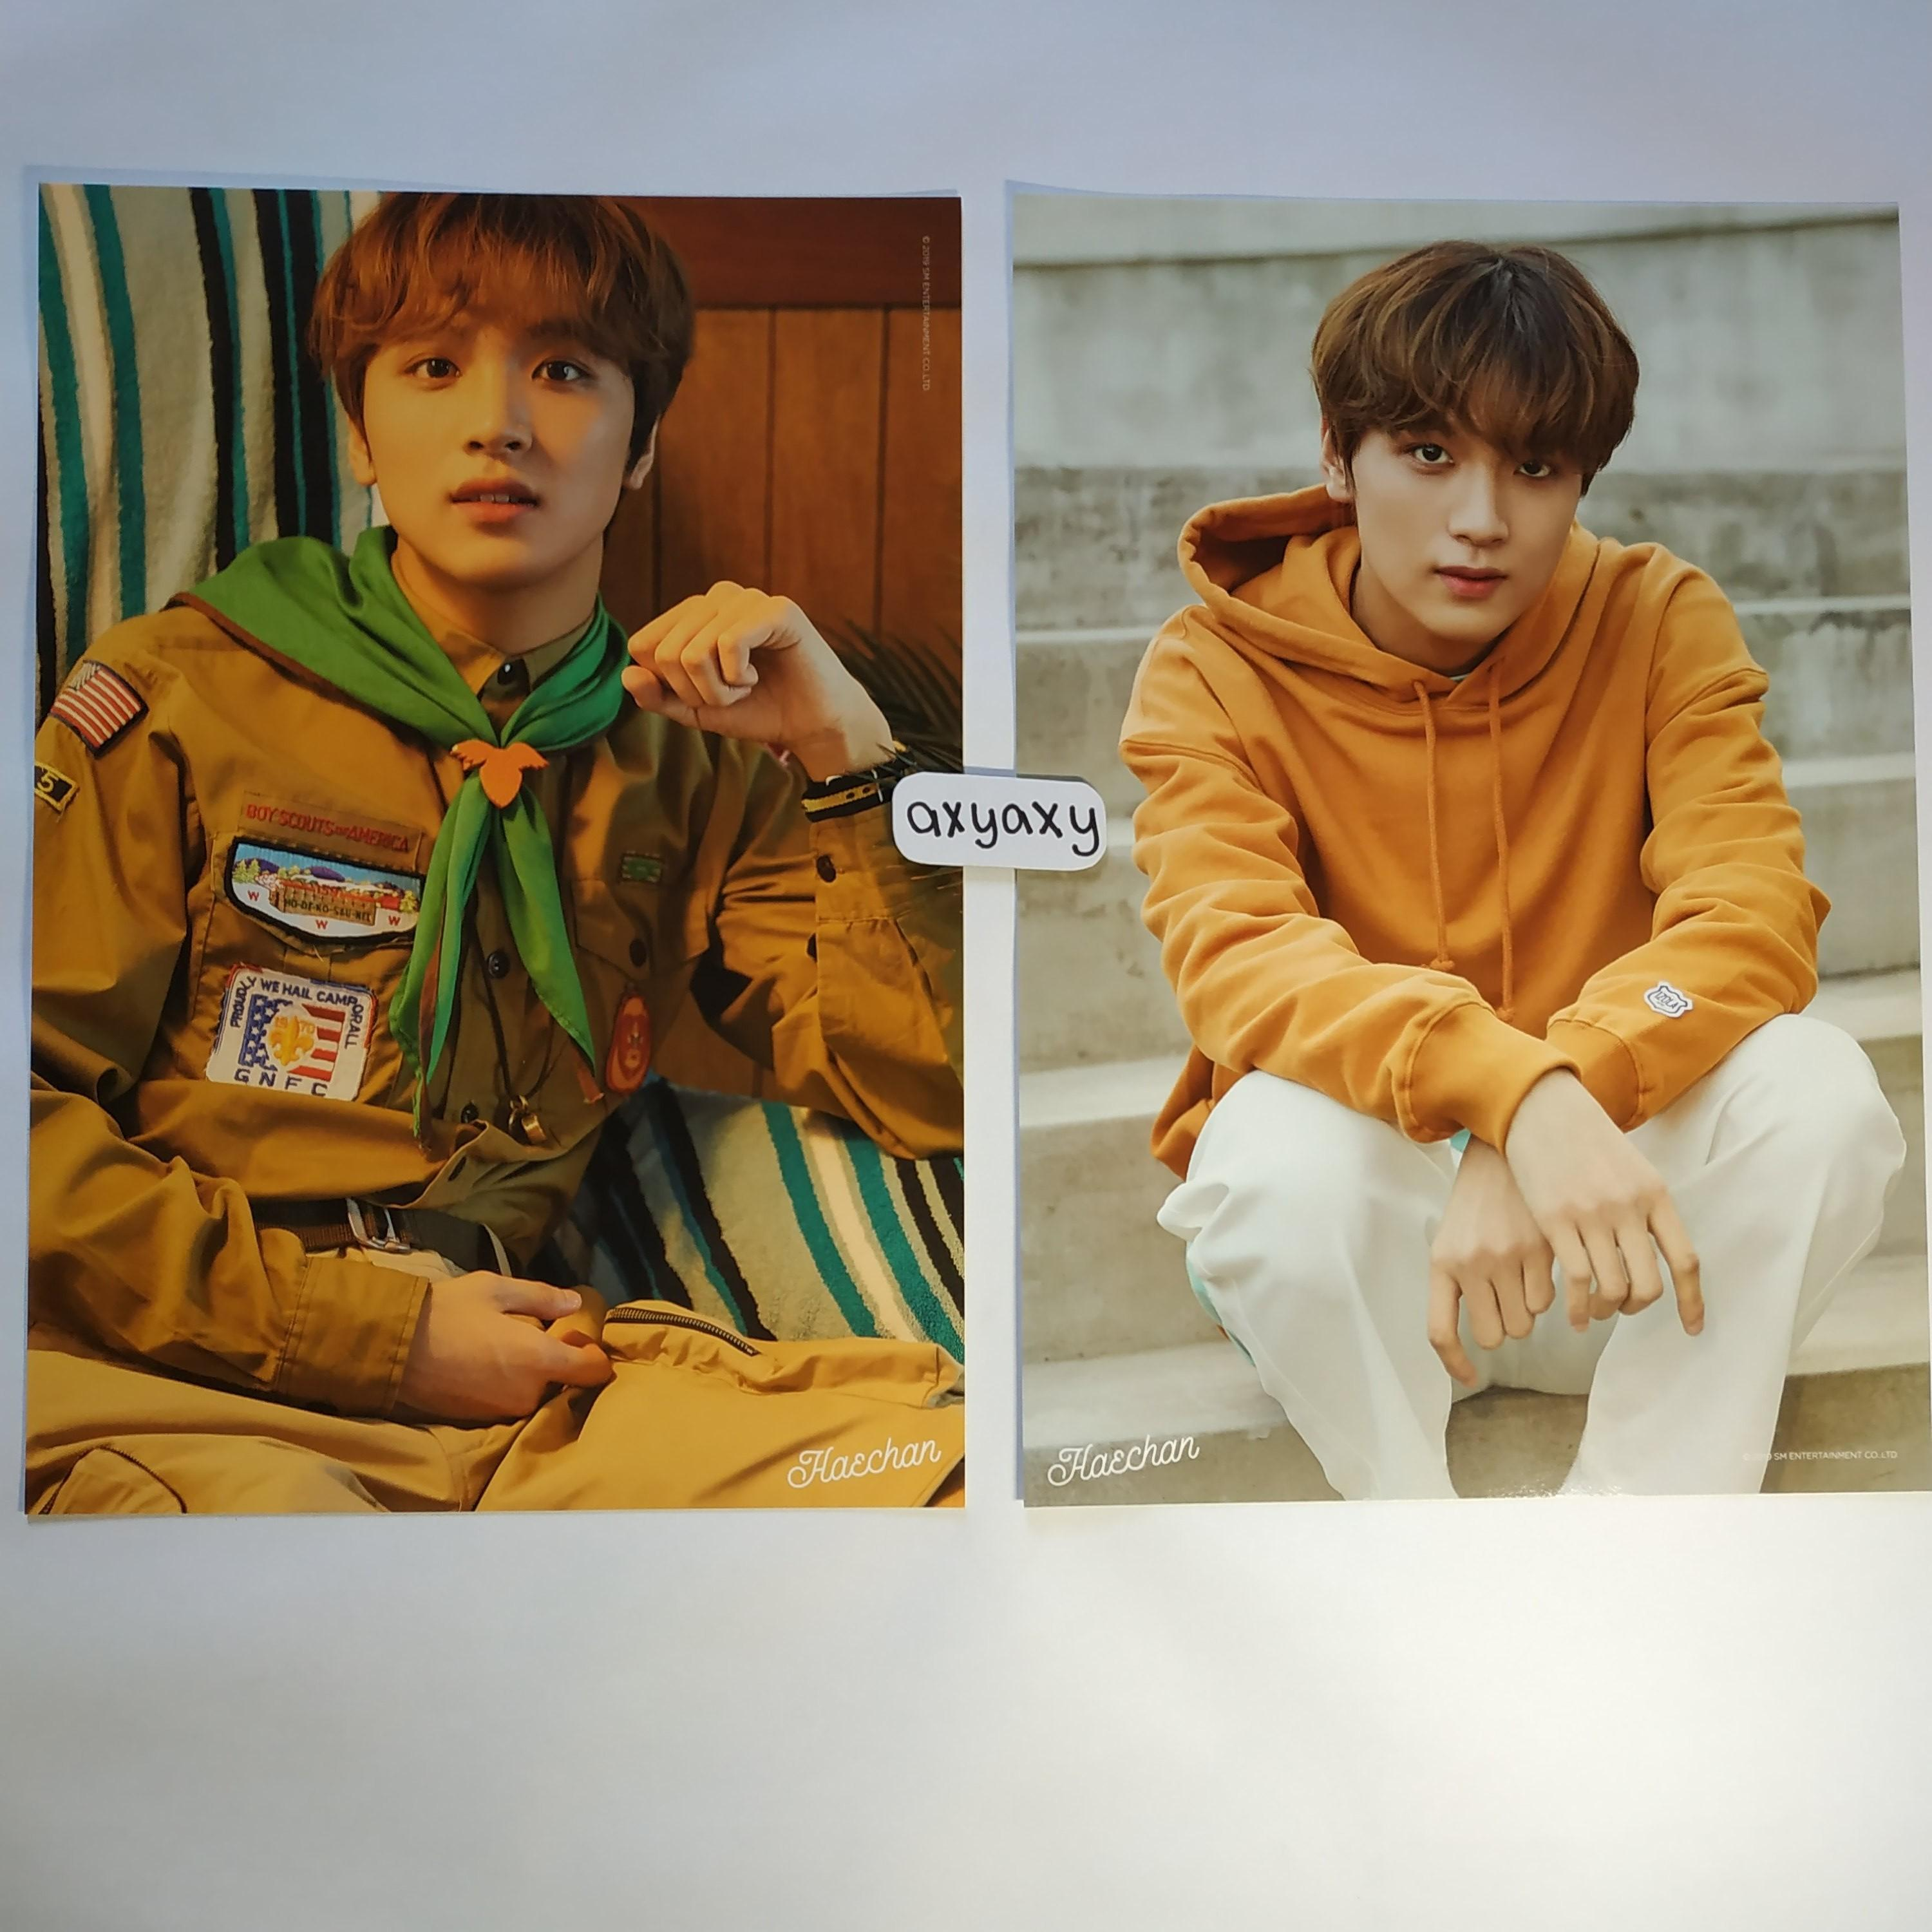 [WTS] NCT Dream Summer Vacation Kit A4 Poster Haechan Set